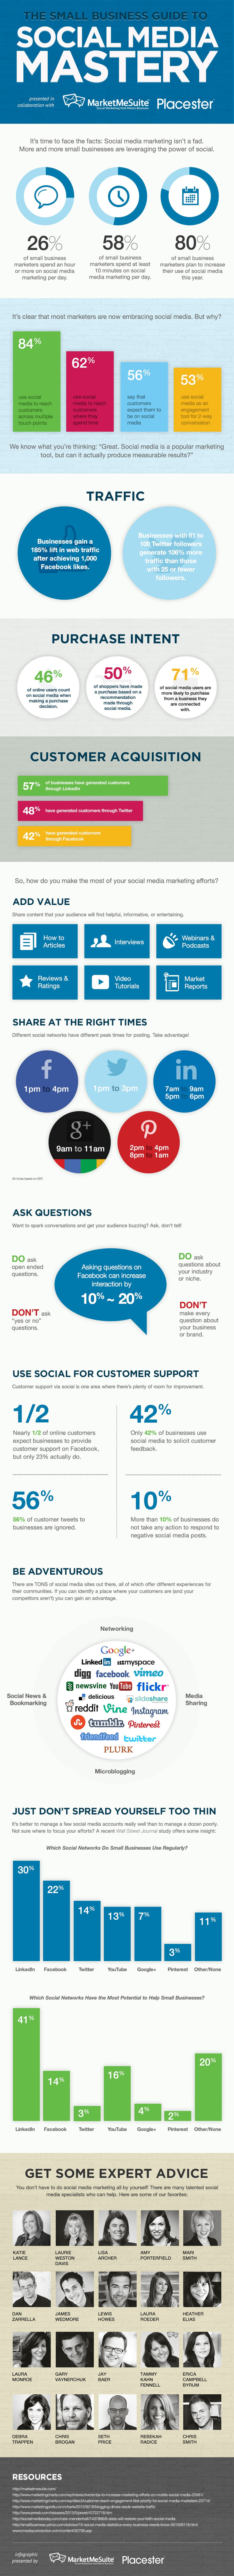 Social Media Mastery Guide Infographic